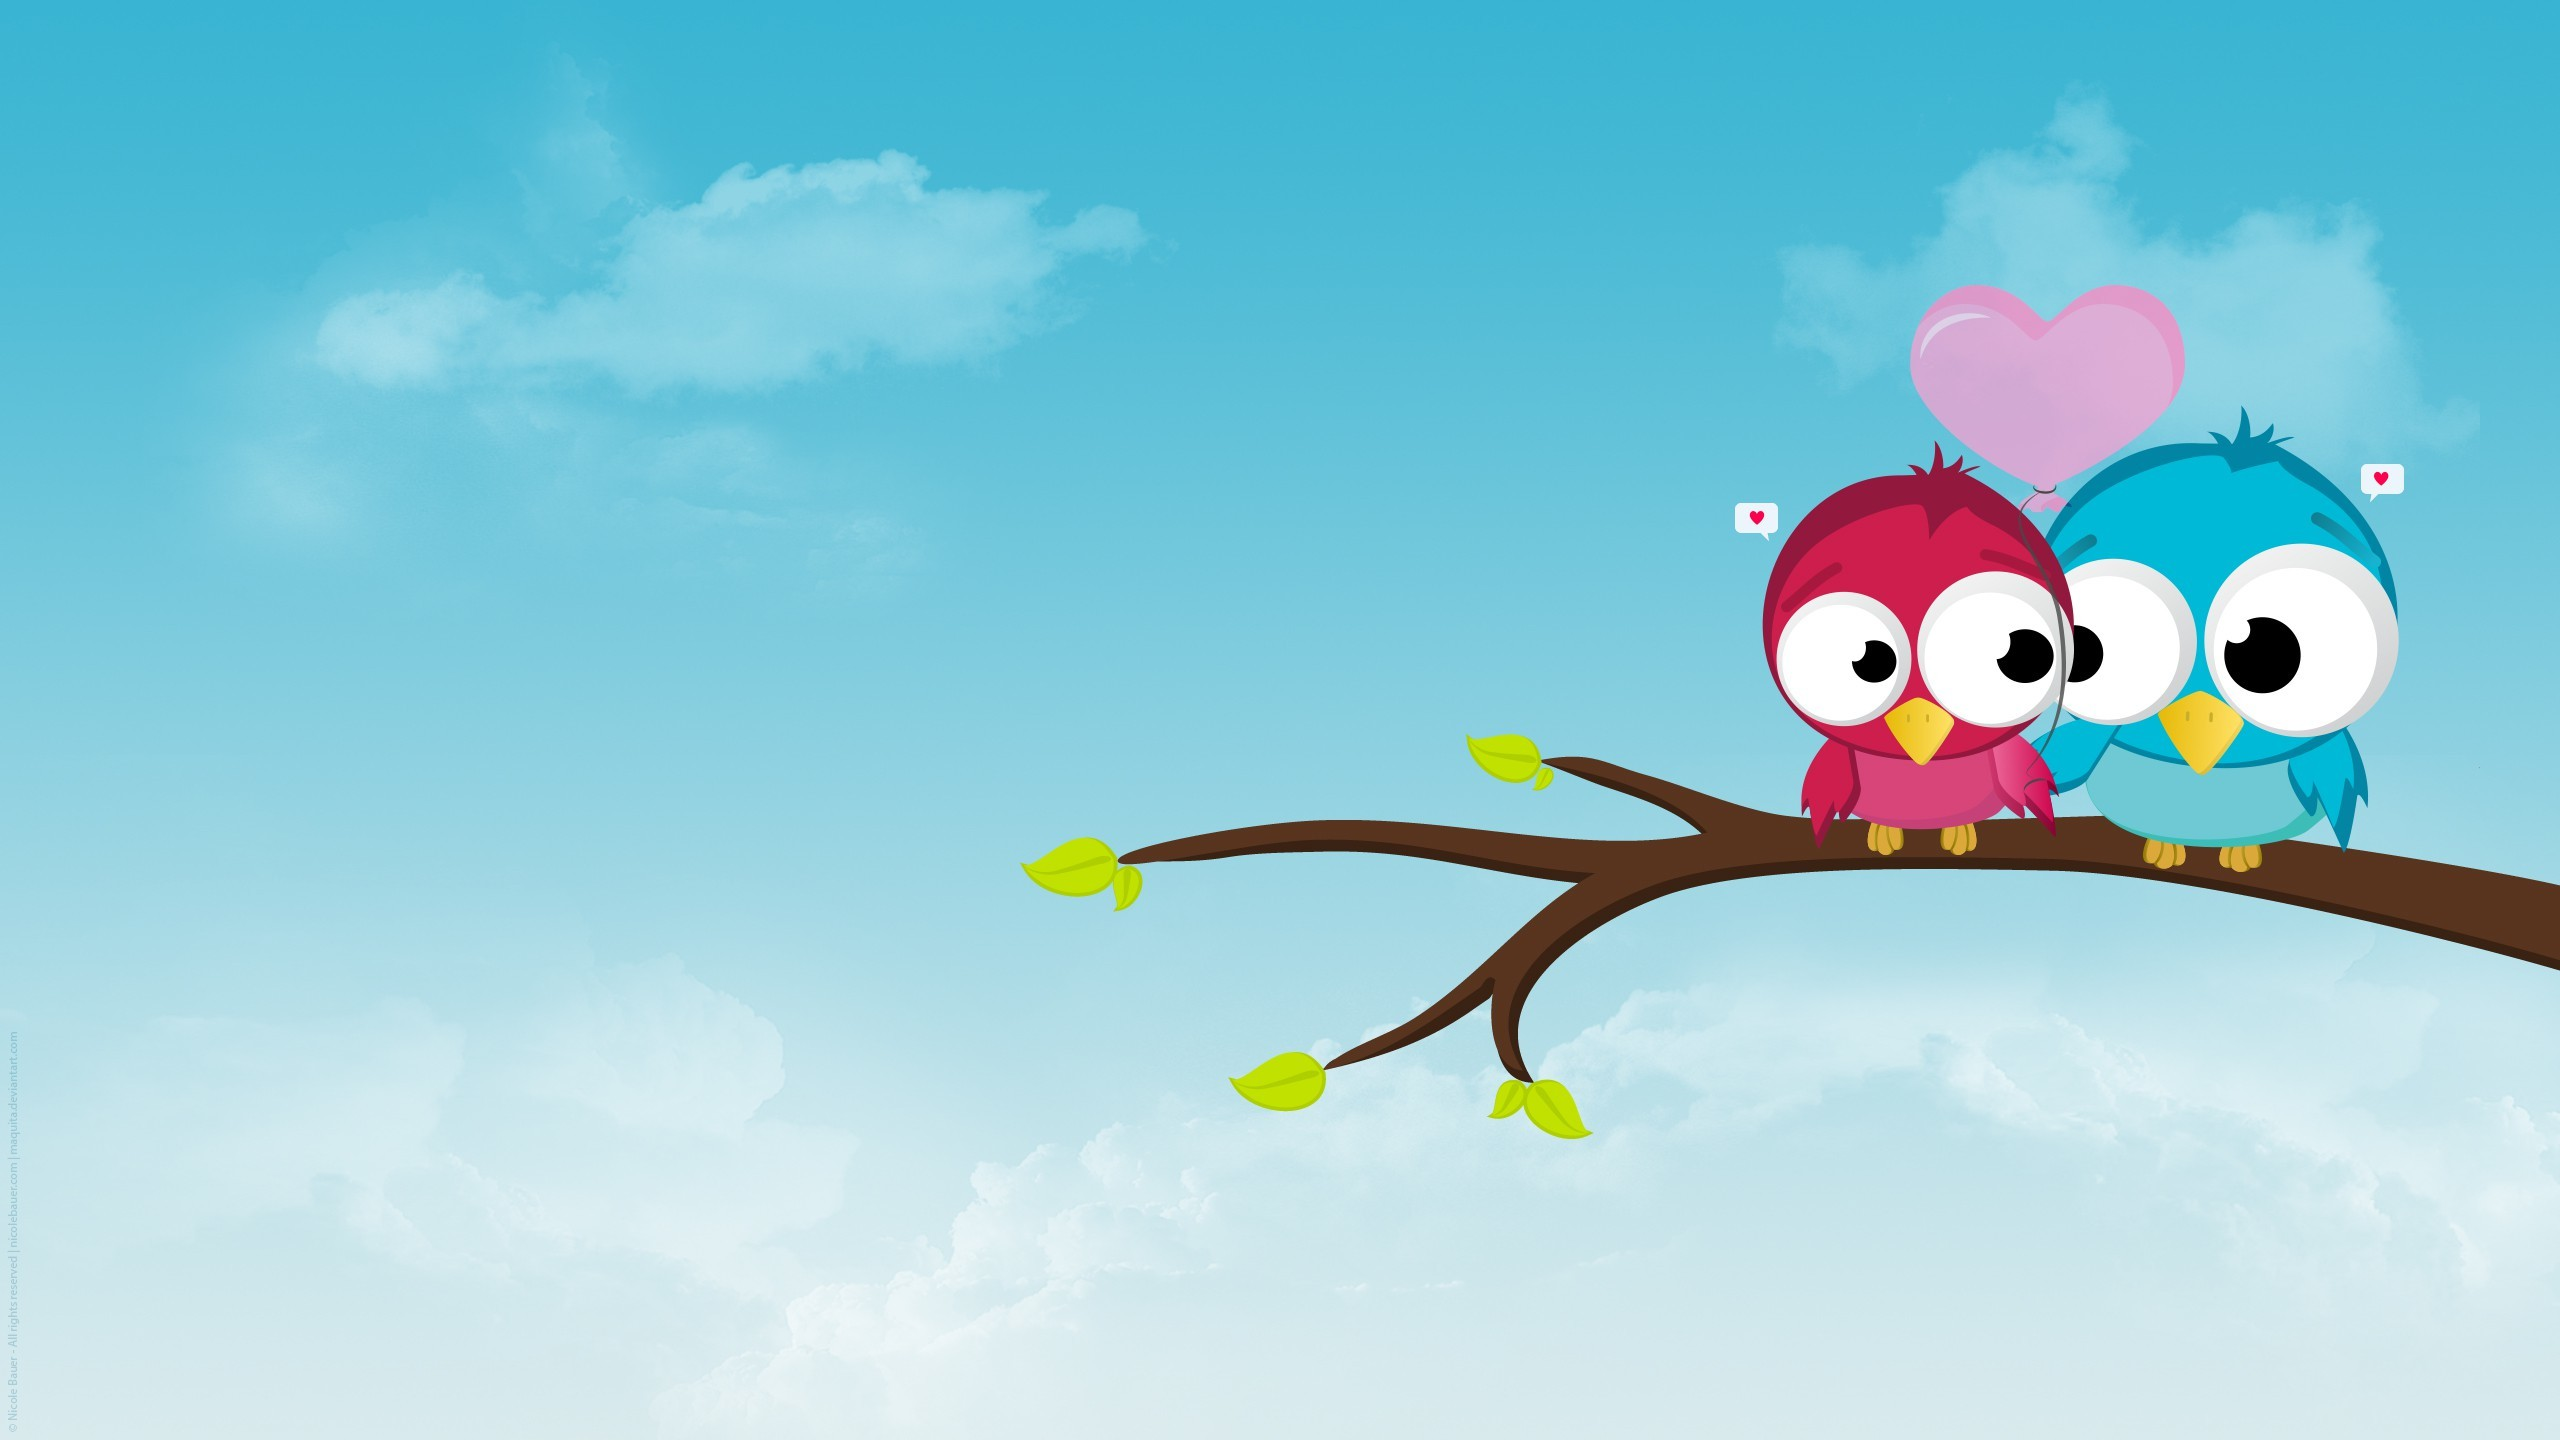 Res: 2560x1440, Free Hd Cute Love Wallpapers Desktop Background Download